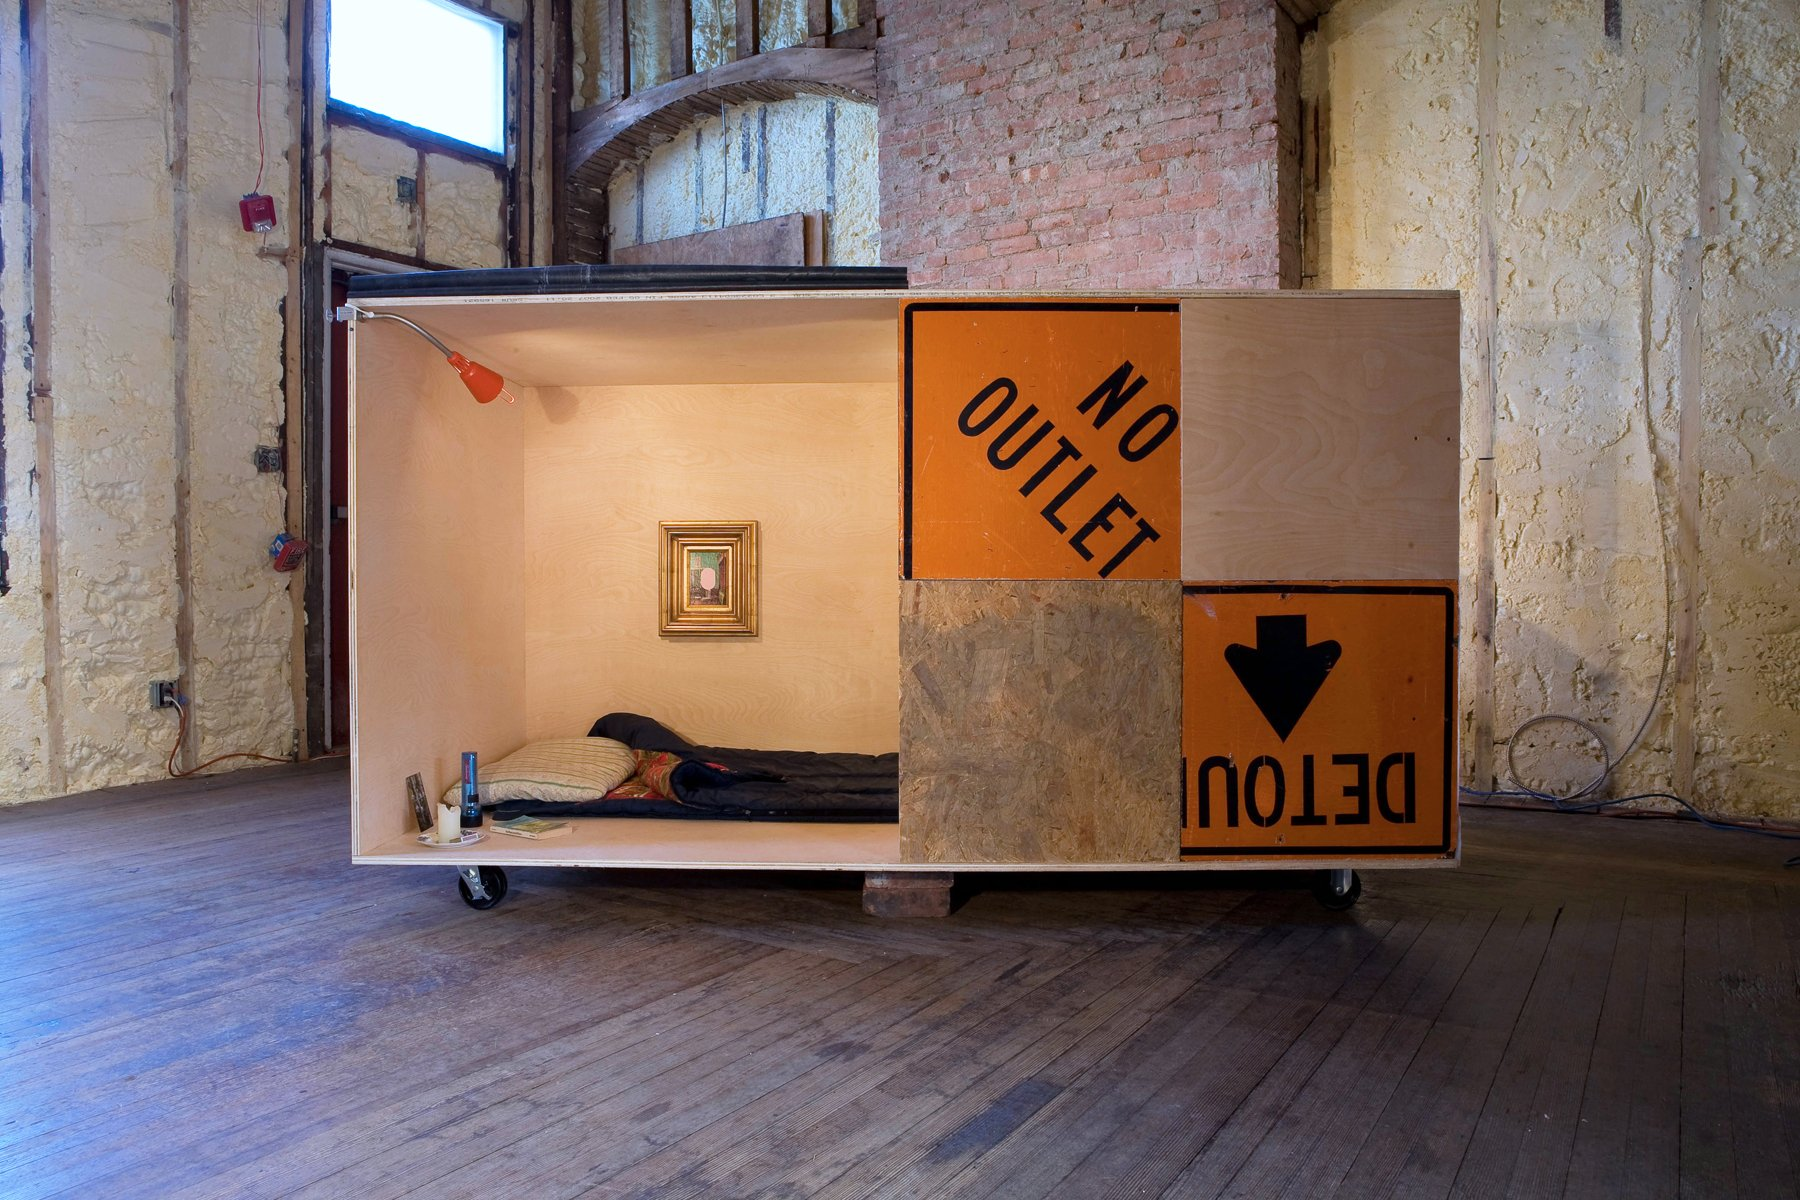 A box made from plywood and orange signs contains a bed and a painting.